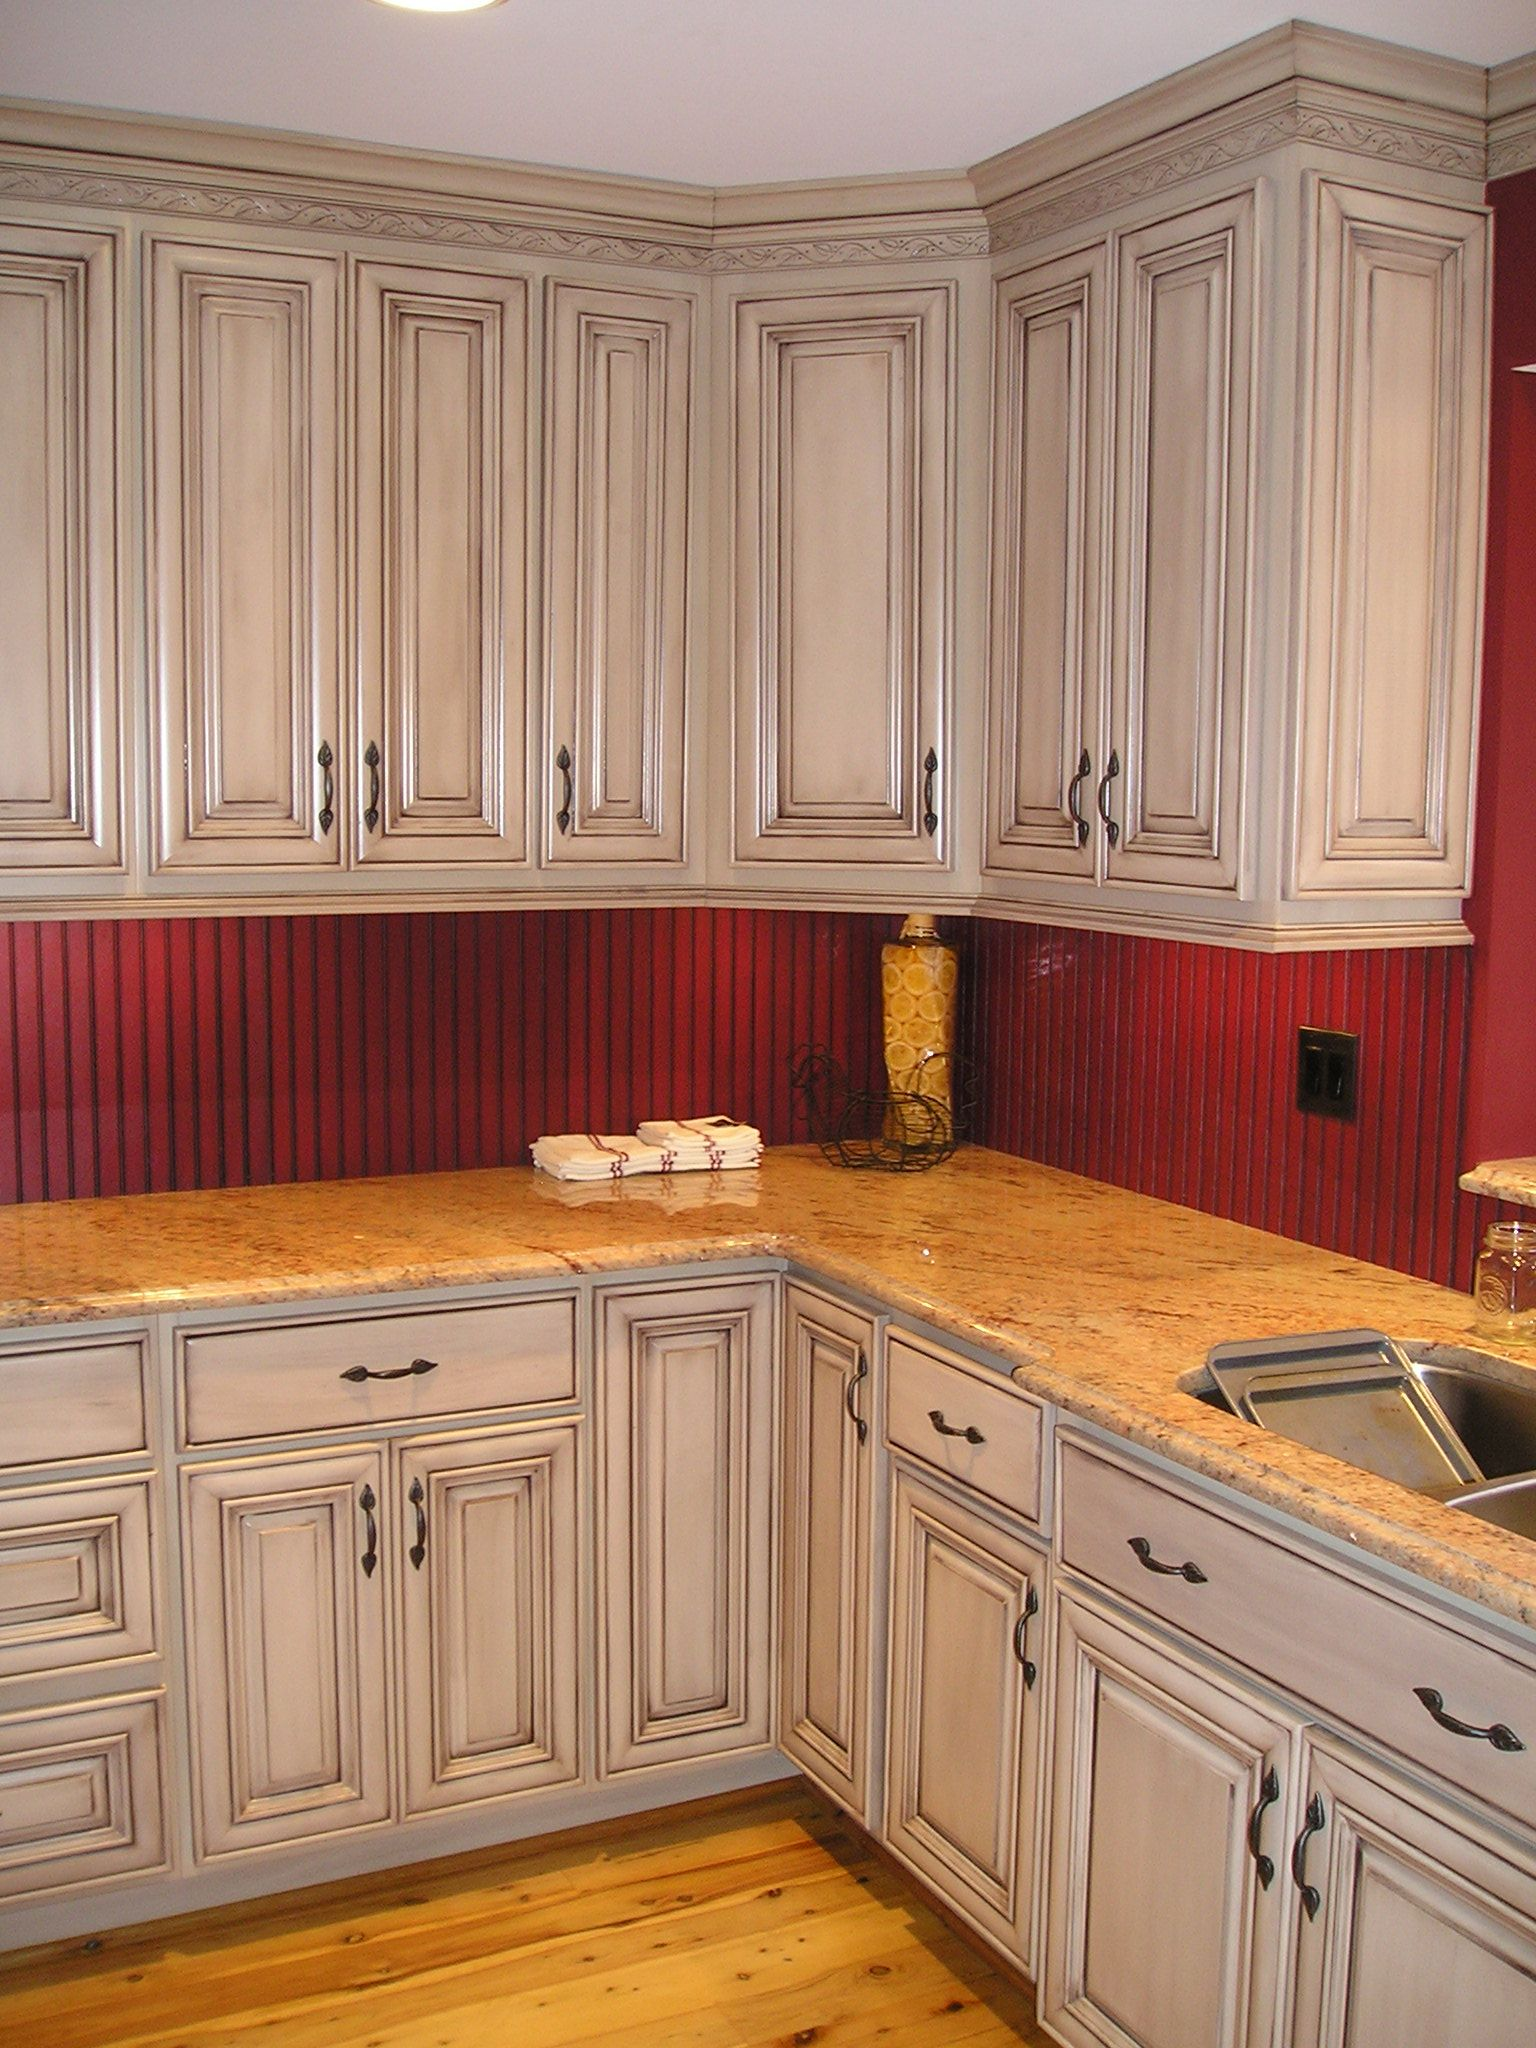 Glaze For Kitchen Cabinets Taupe With Brown Glazed Kitchen Cabinets And Red Glazed Backsplash